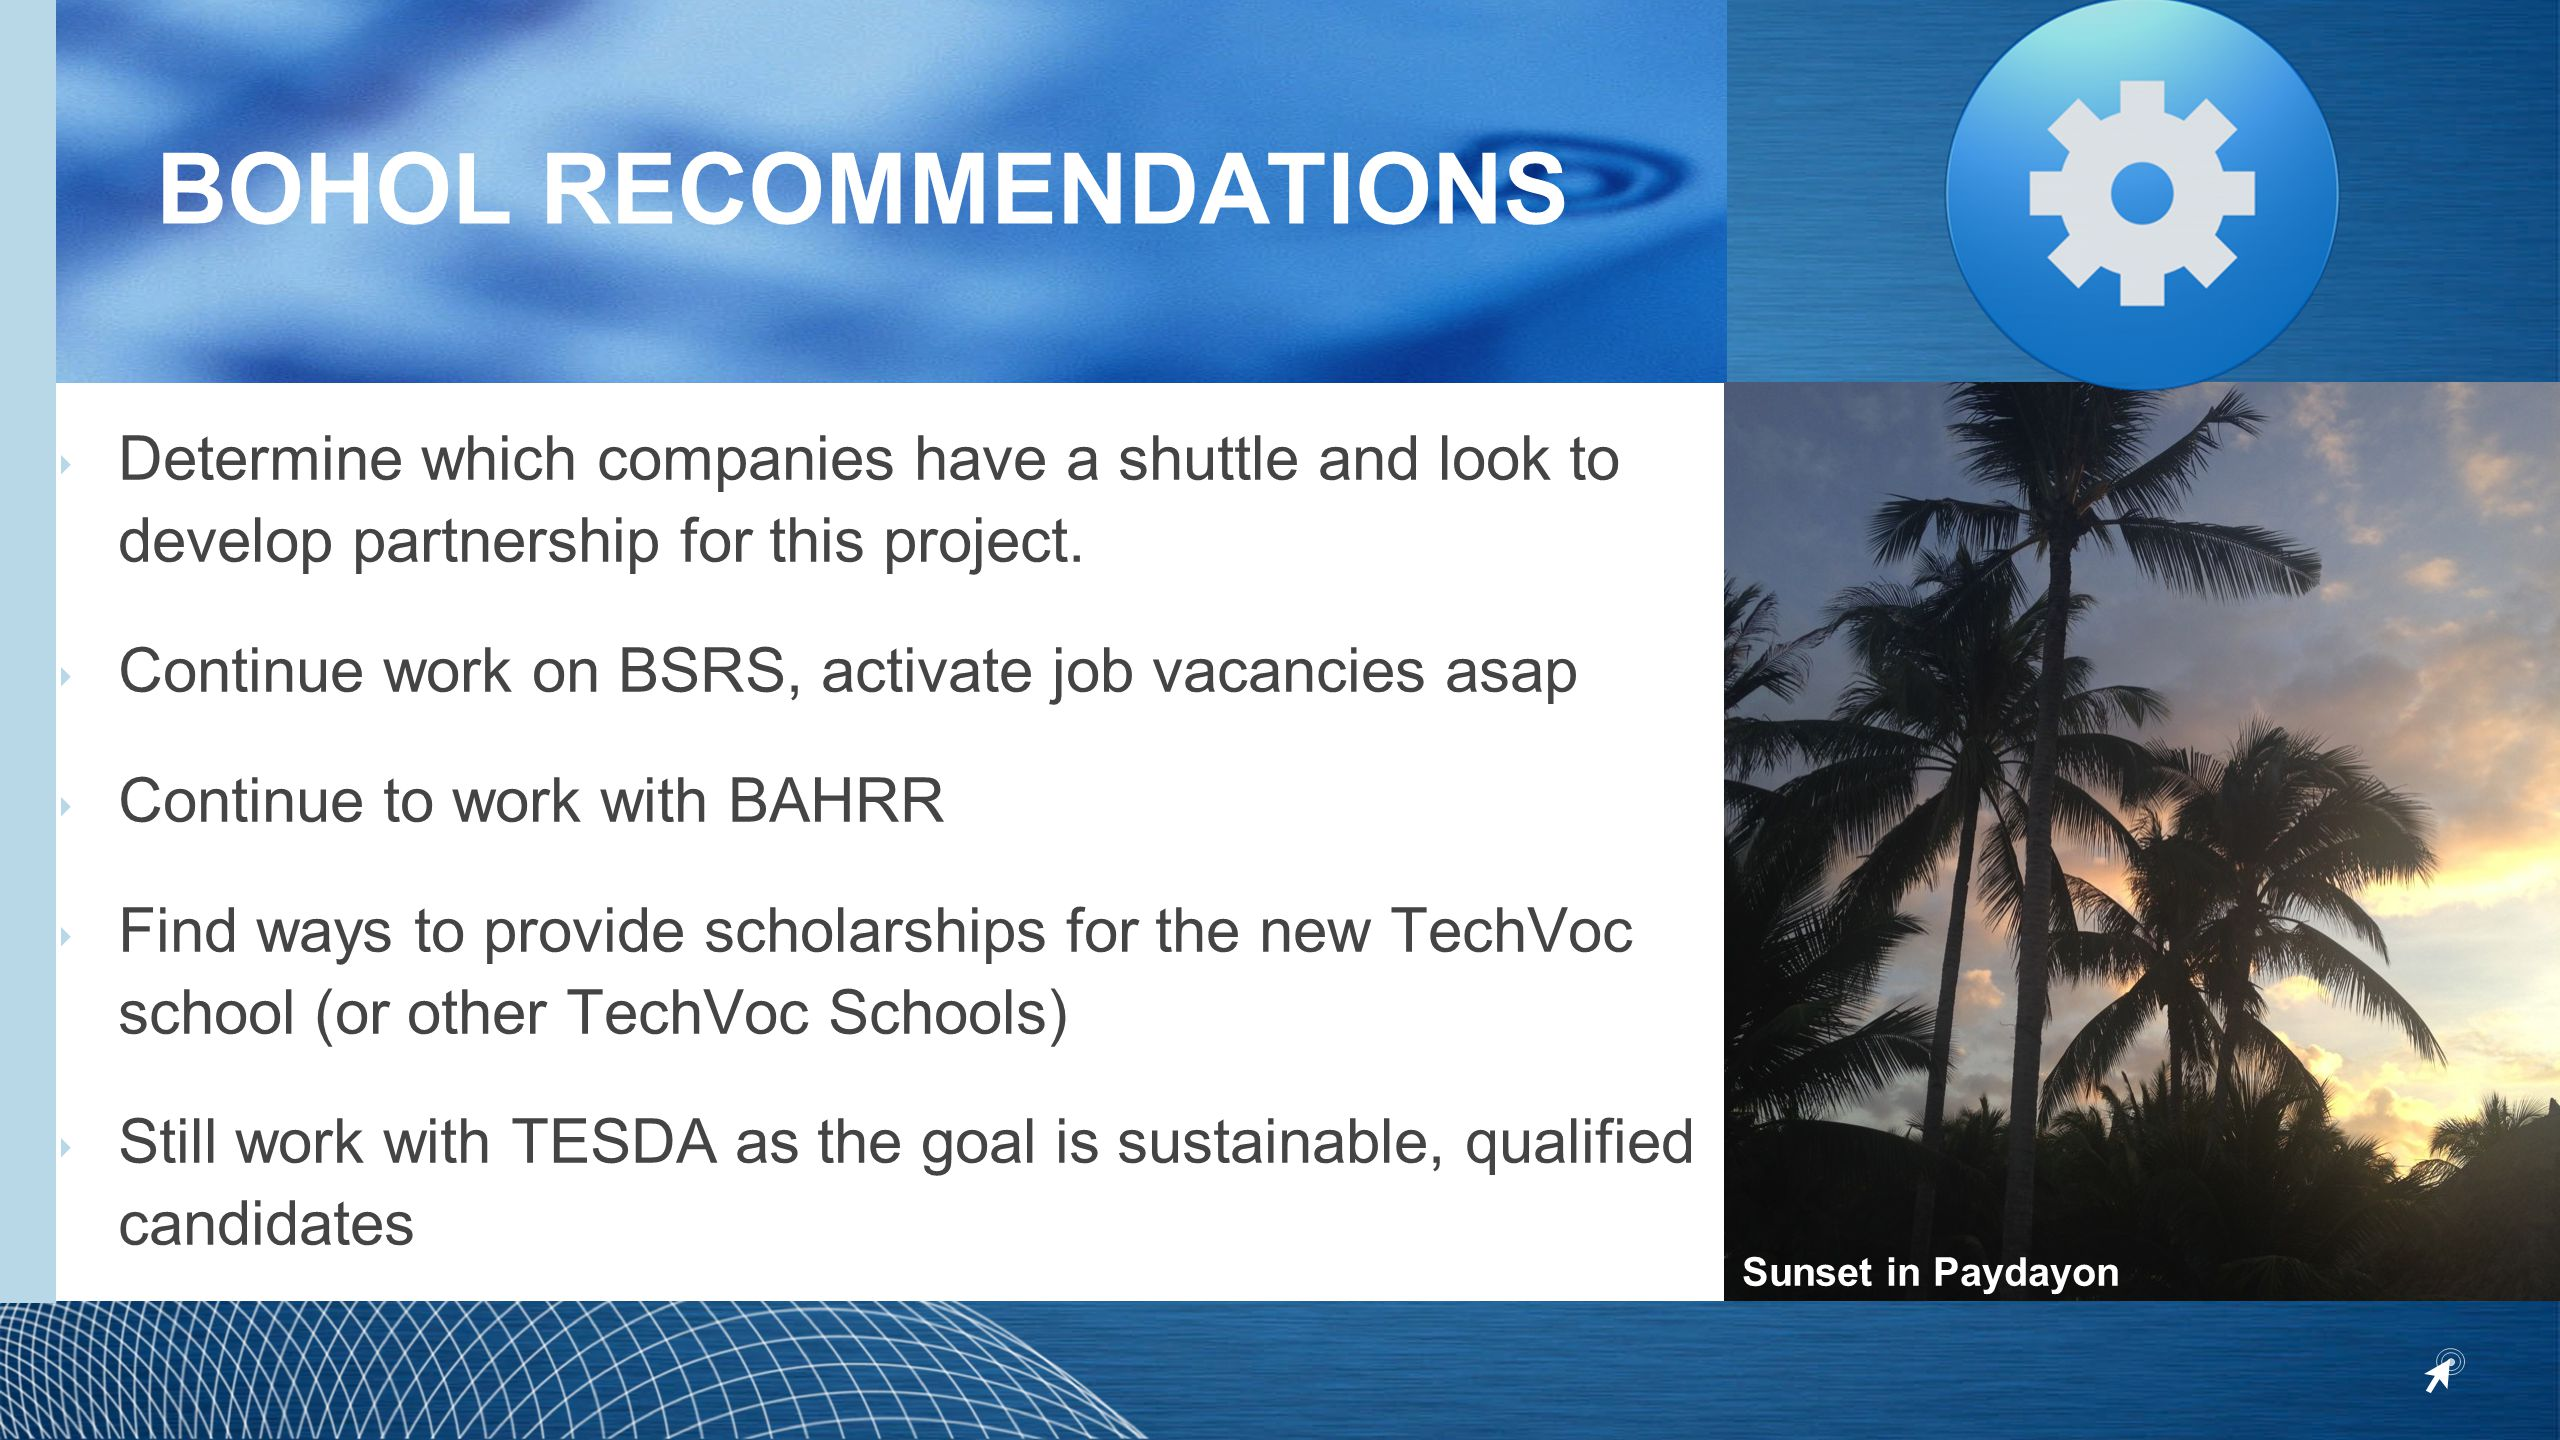 BOHOL RECOMMENDATIONS ‣ Determine which companies have a shuttle and look to develop partnership for this project. ‣ Continue work on BSRS, activate j